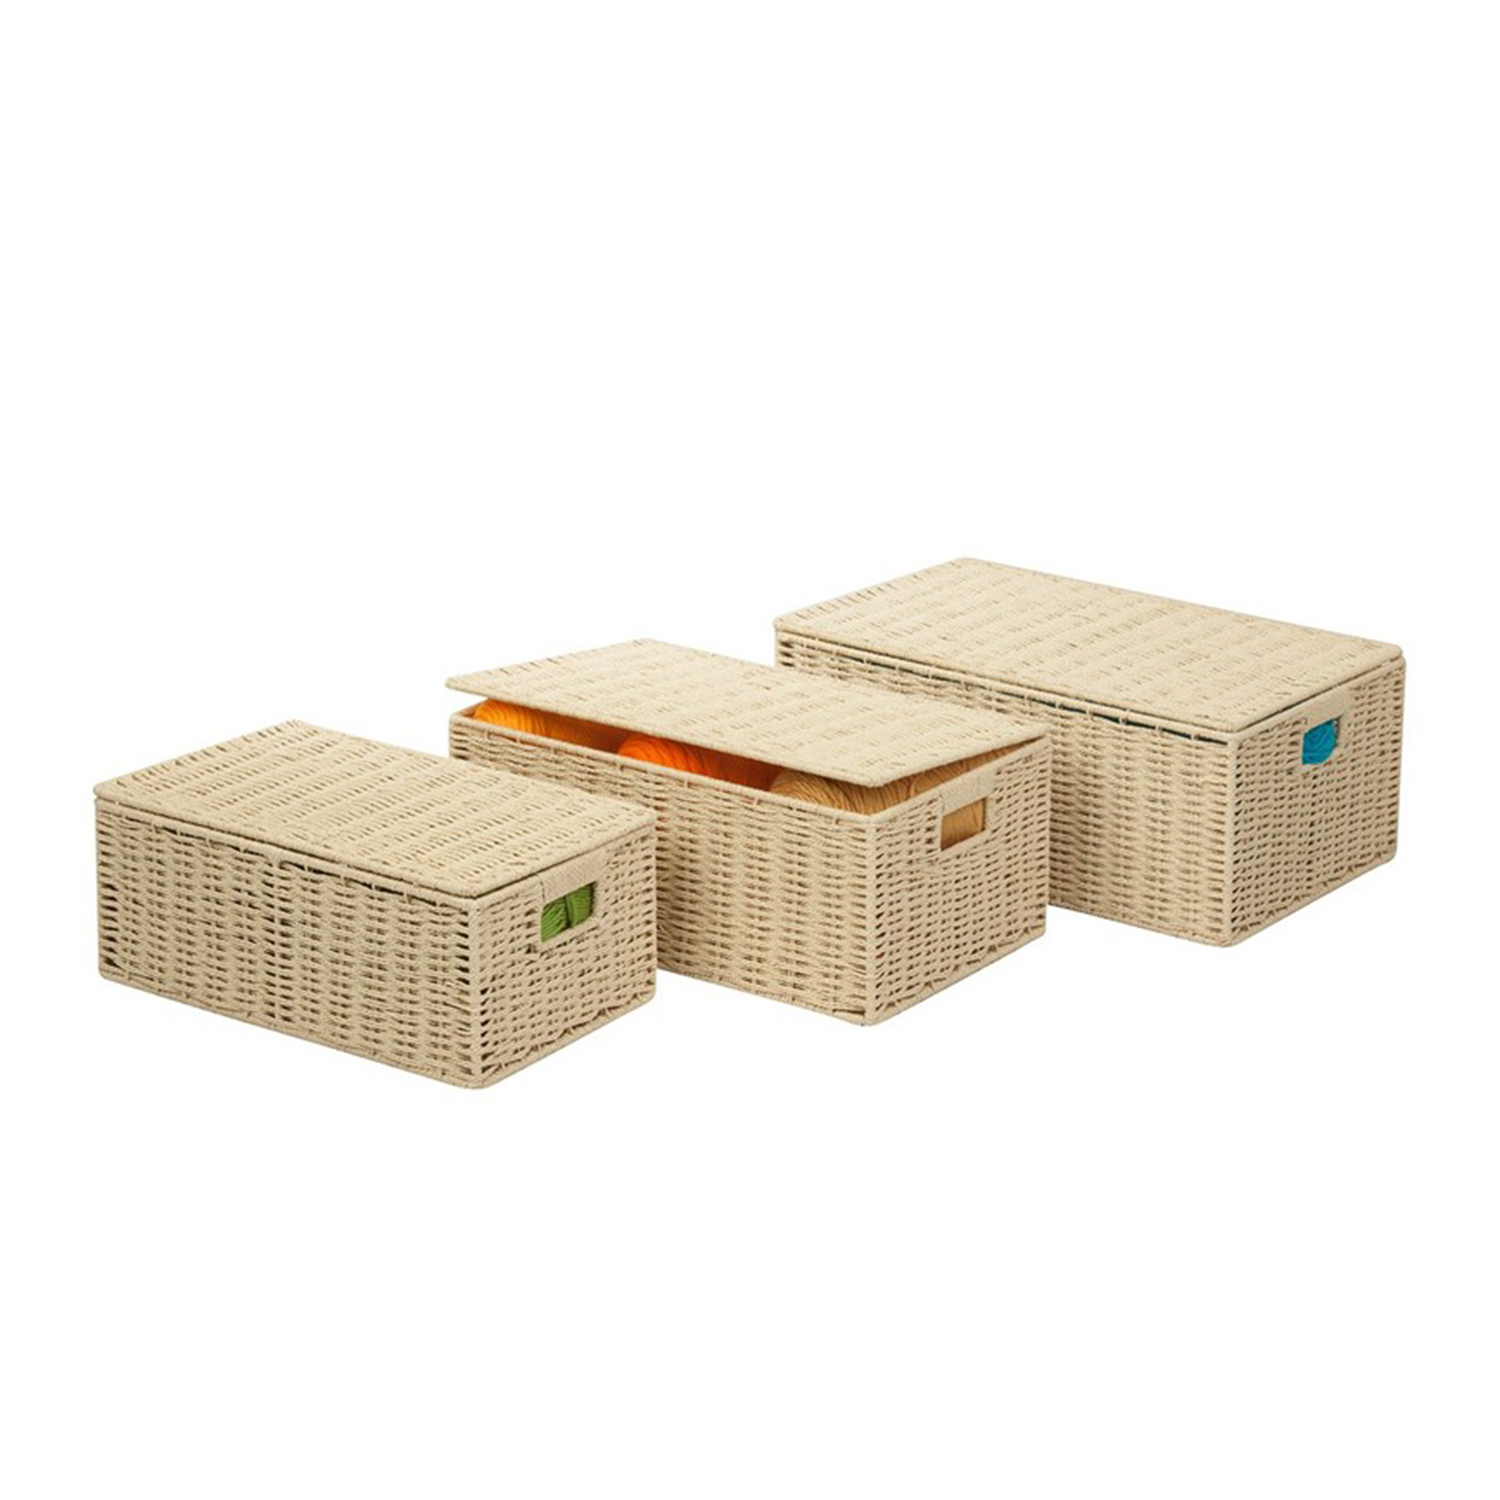 Butter Paper Rope Baskets - Set of 3